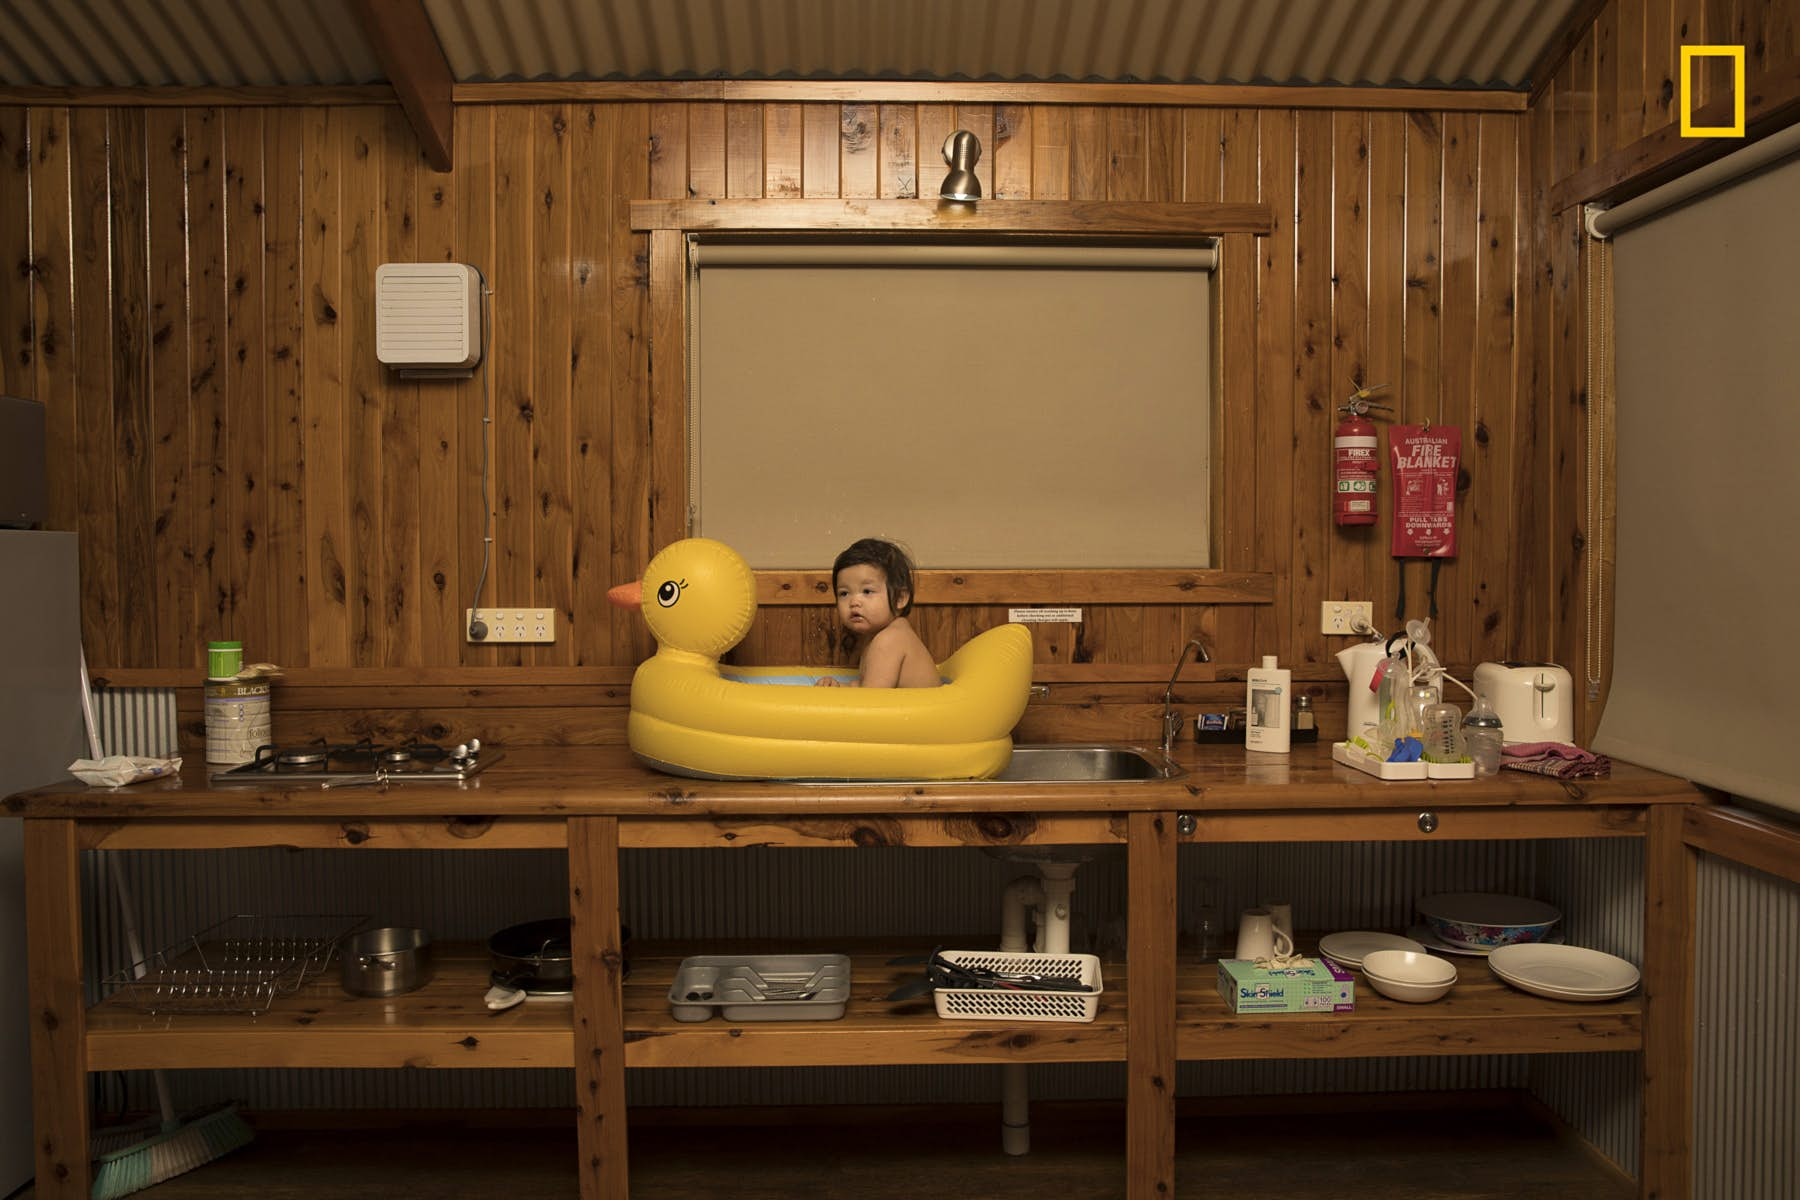 The second place in the People category went to Todd Kennedy for this shot of his youngest daughter enjoying a bath in a rubber ducky on the sink. The image was captured during a family holiday from Sydney to Uluru in Australia, when the heat became unbearable. Image courtesy of Todd Kennedy/2018 National Geographic Photo Contest